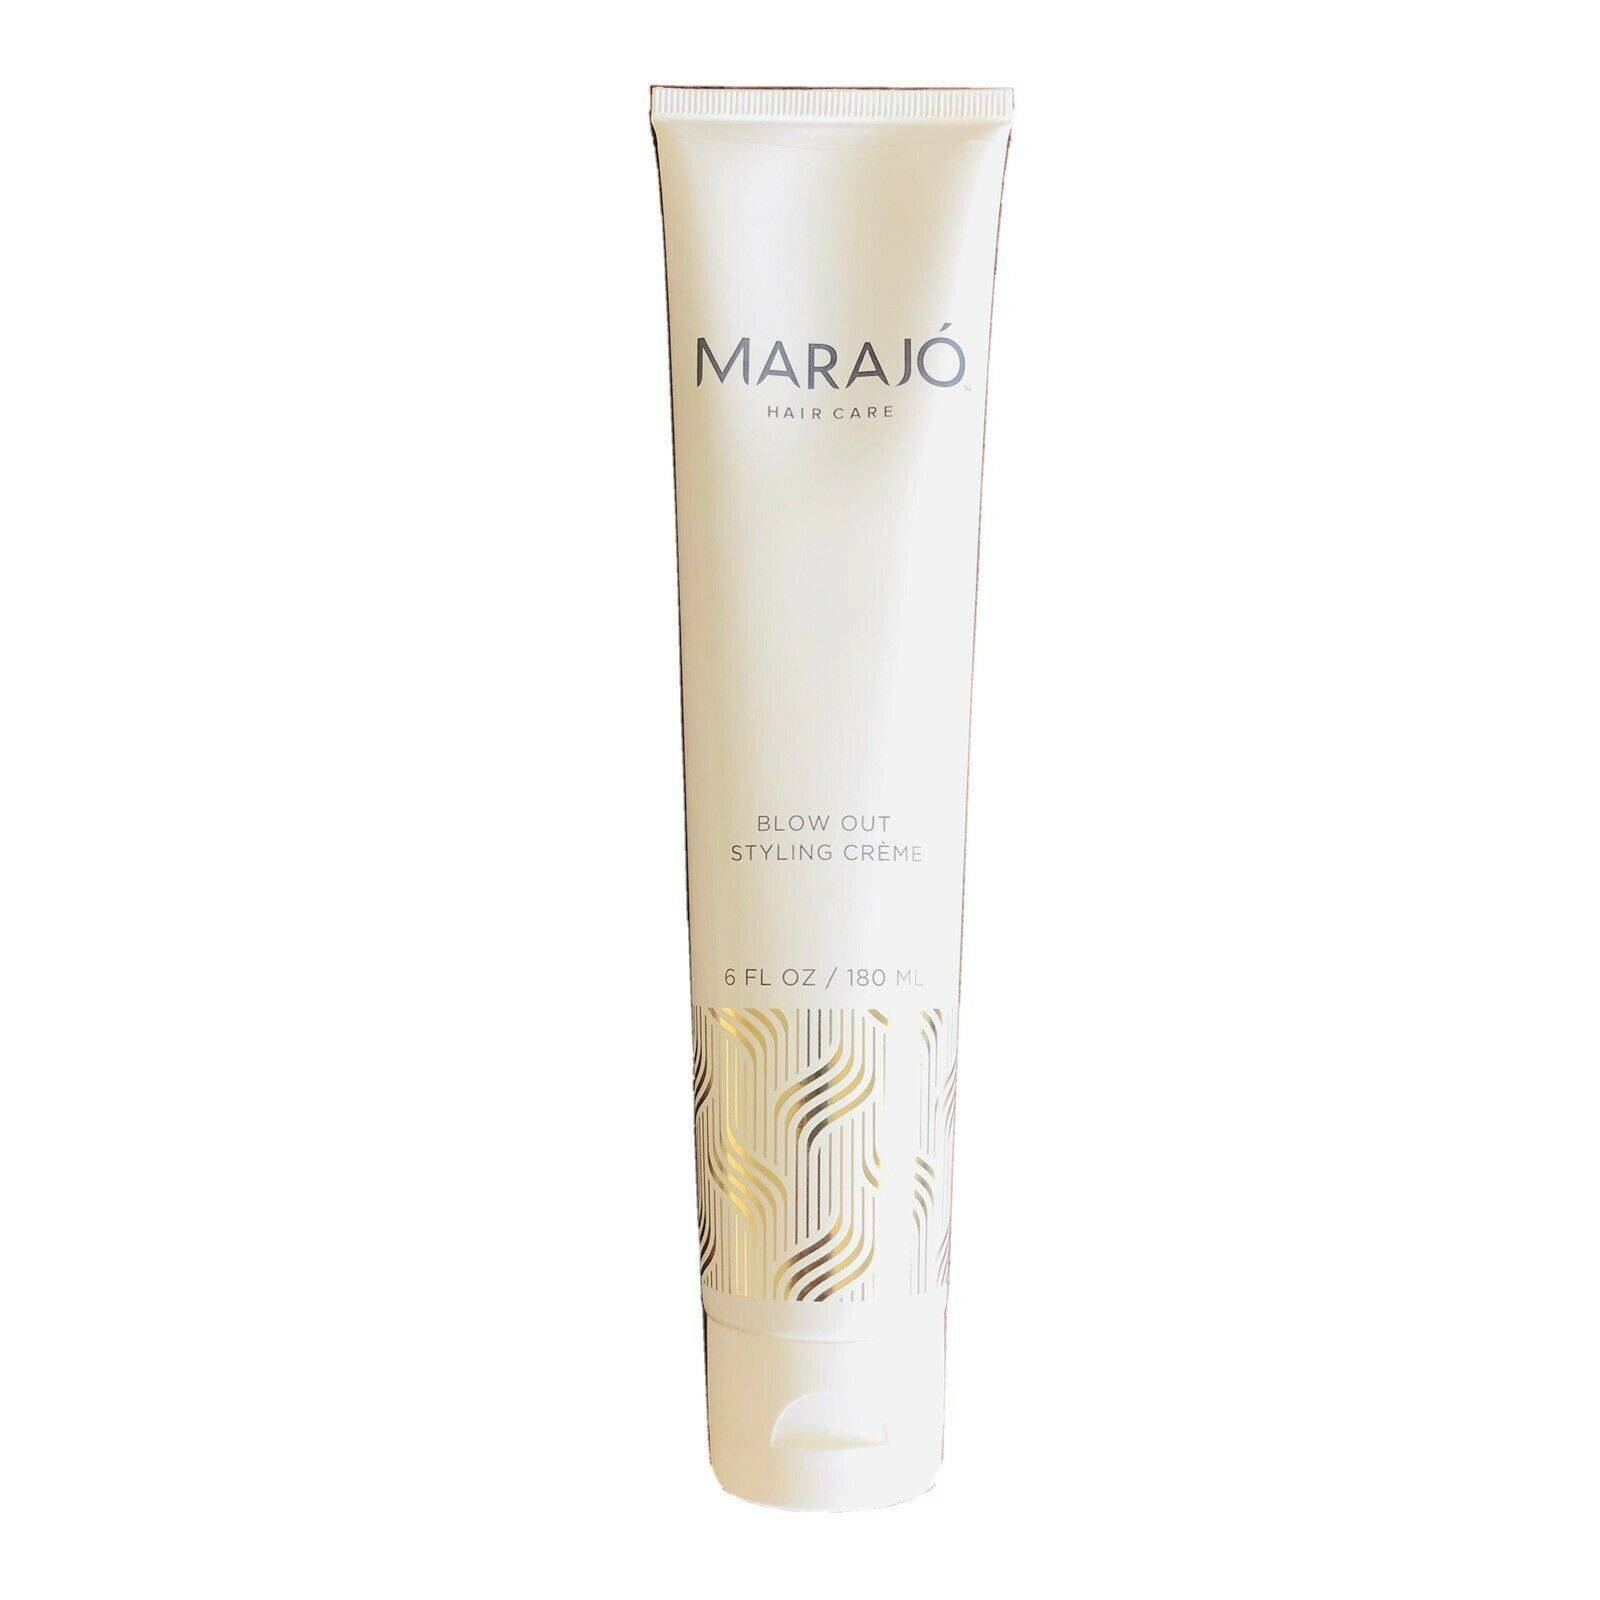 Marajo Hair Care Blow Out Styling Creme